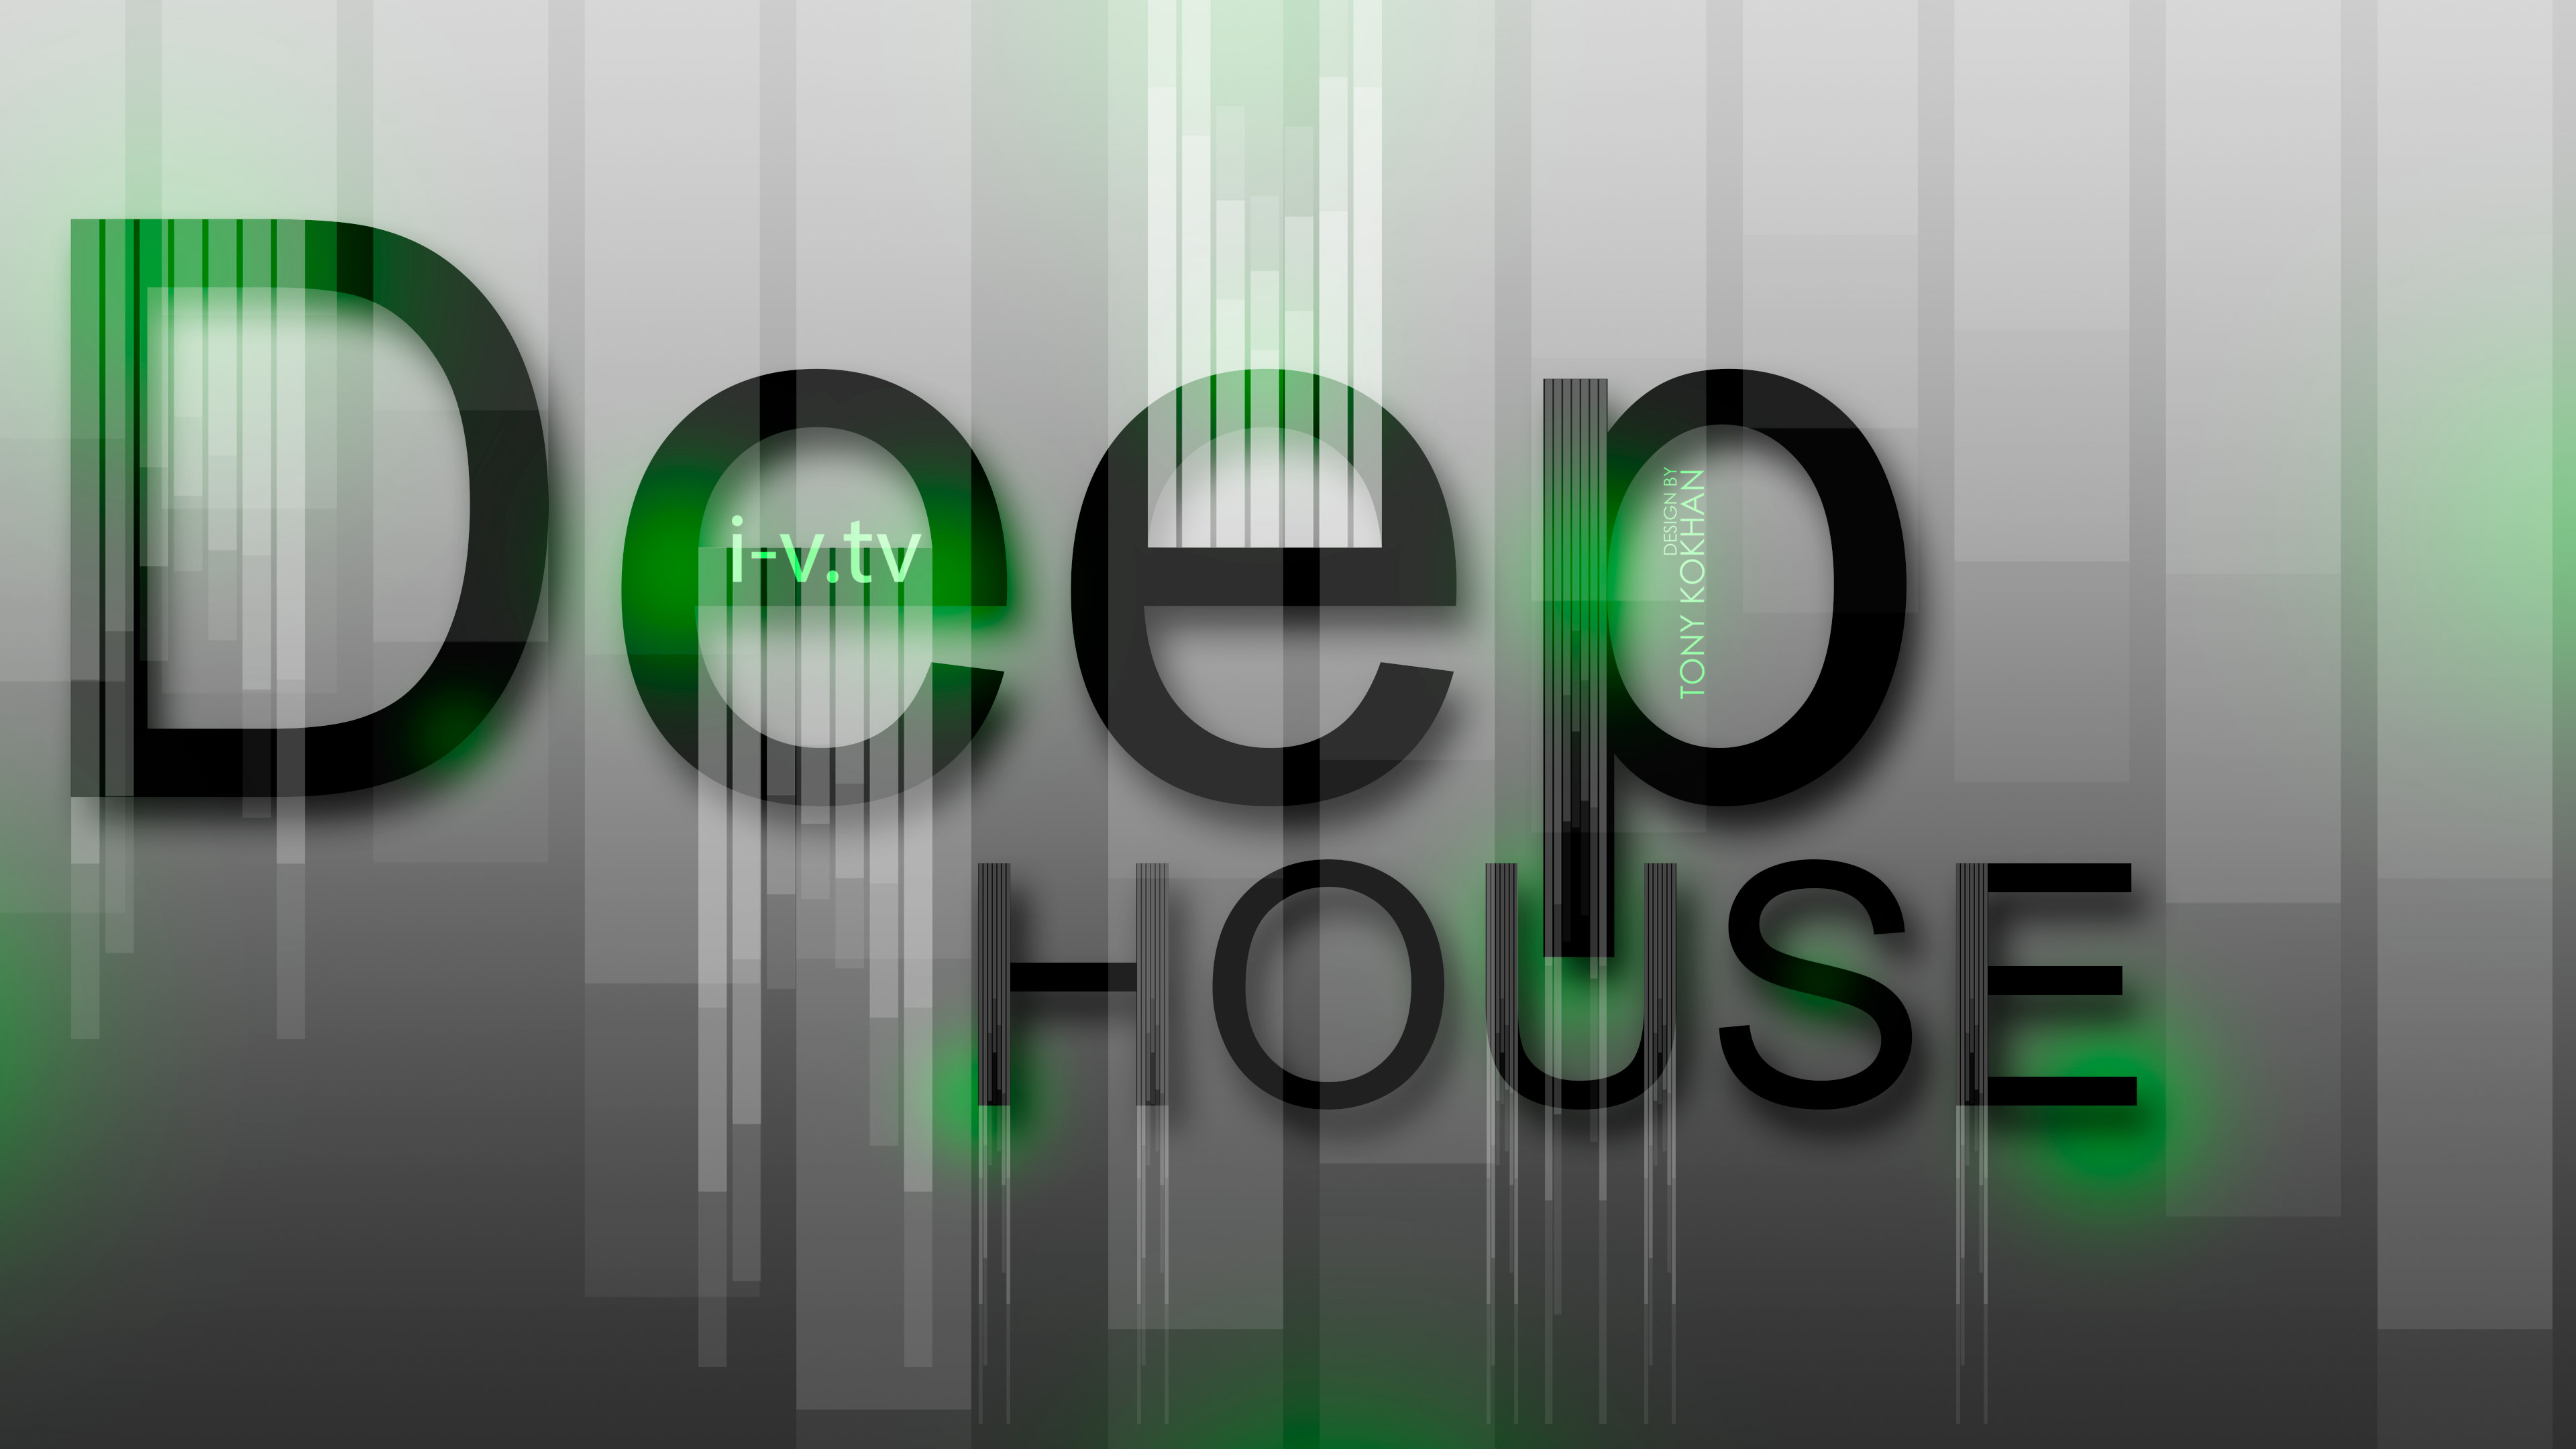 Deep House Music eQ Style 2015 Creative Sound Wallpapers 3840x2160